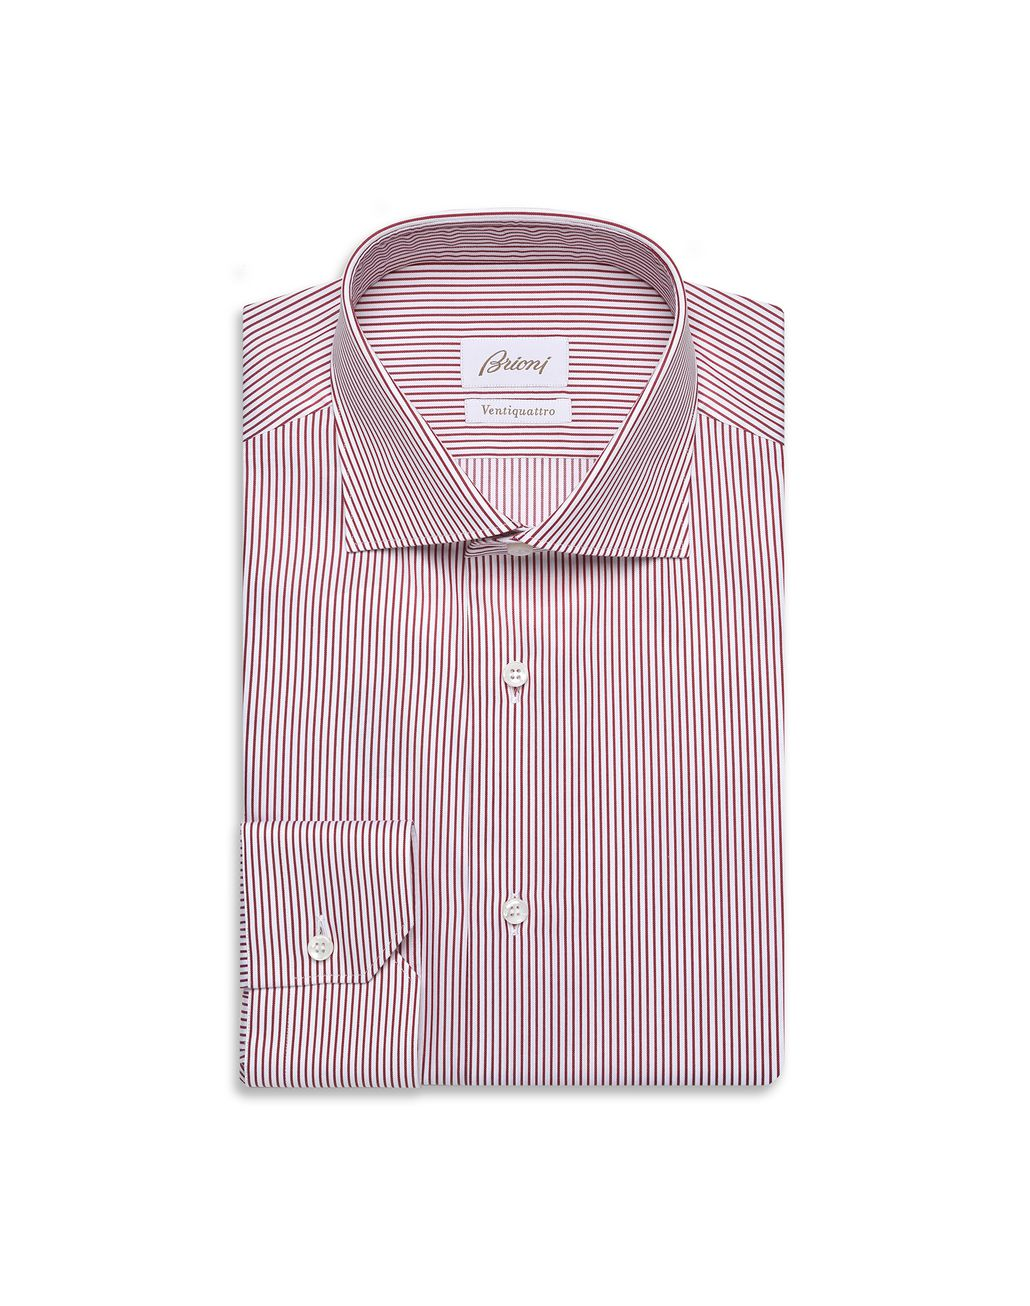 BRIONI Bordeaux and White Striped Formal Shirt  Formal shirt Man f